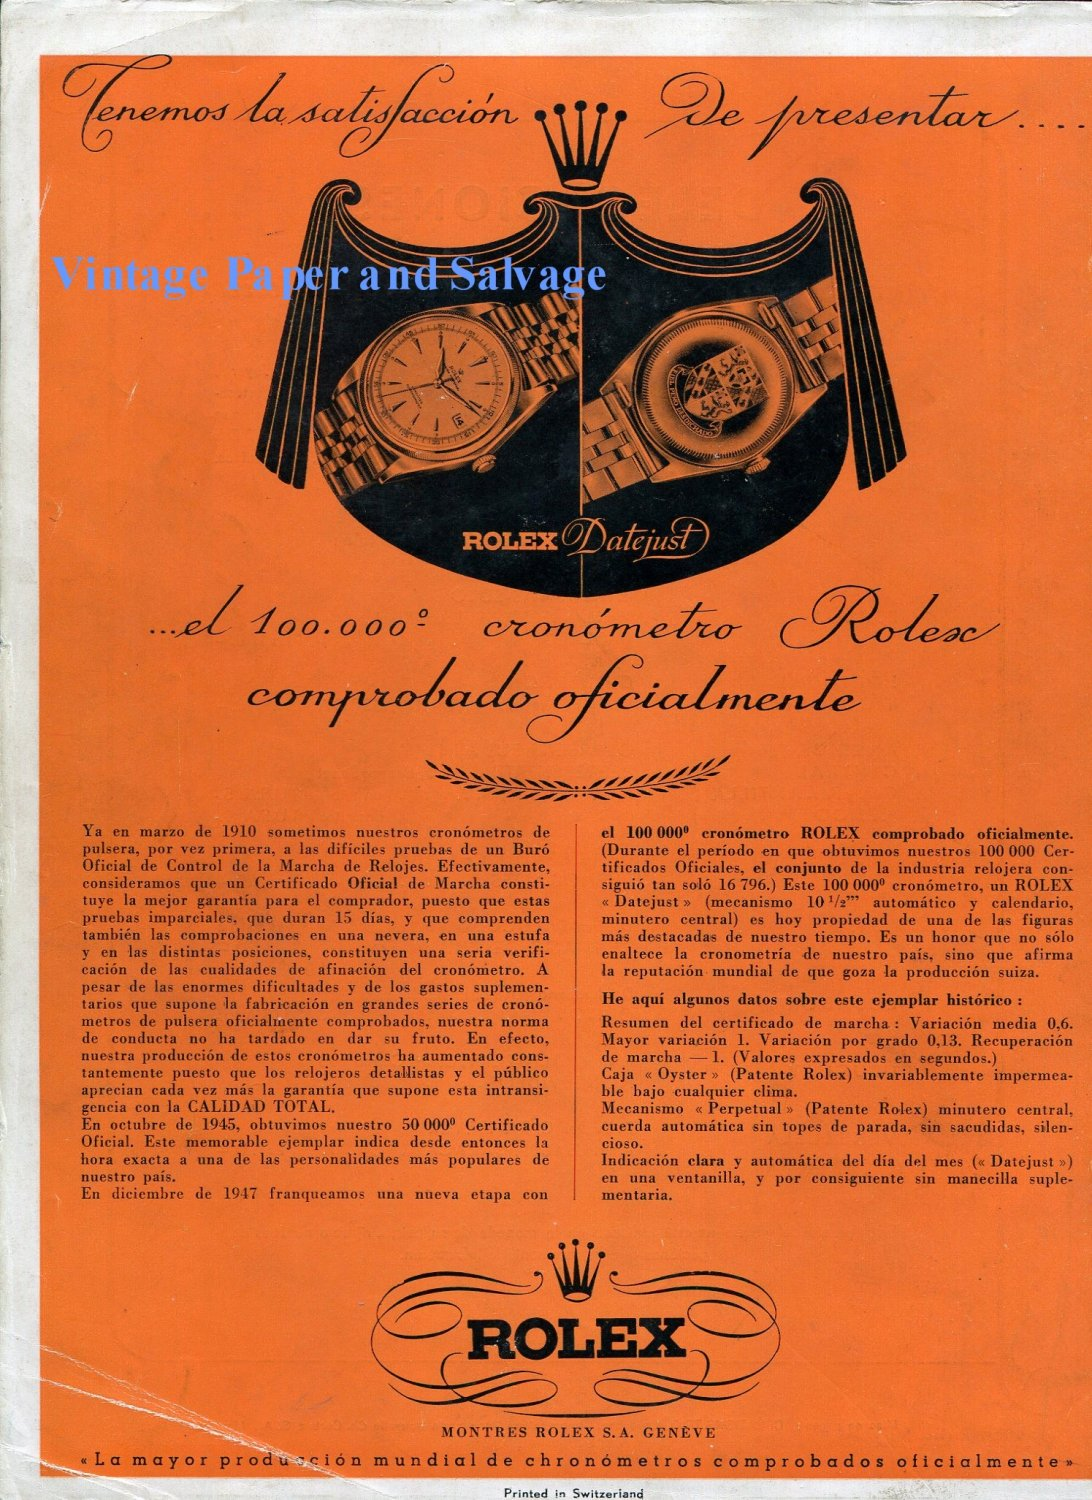 Vintage 1948 Rolex Watch Company 100,000th Chronometer Montres Rolex SA 1940s Swiss Ad Advert Suisse